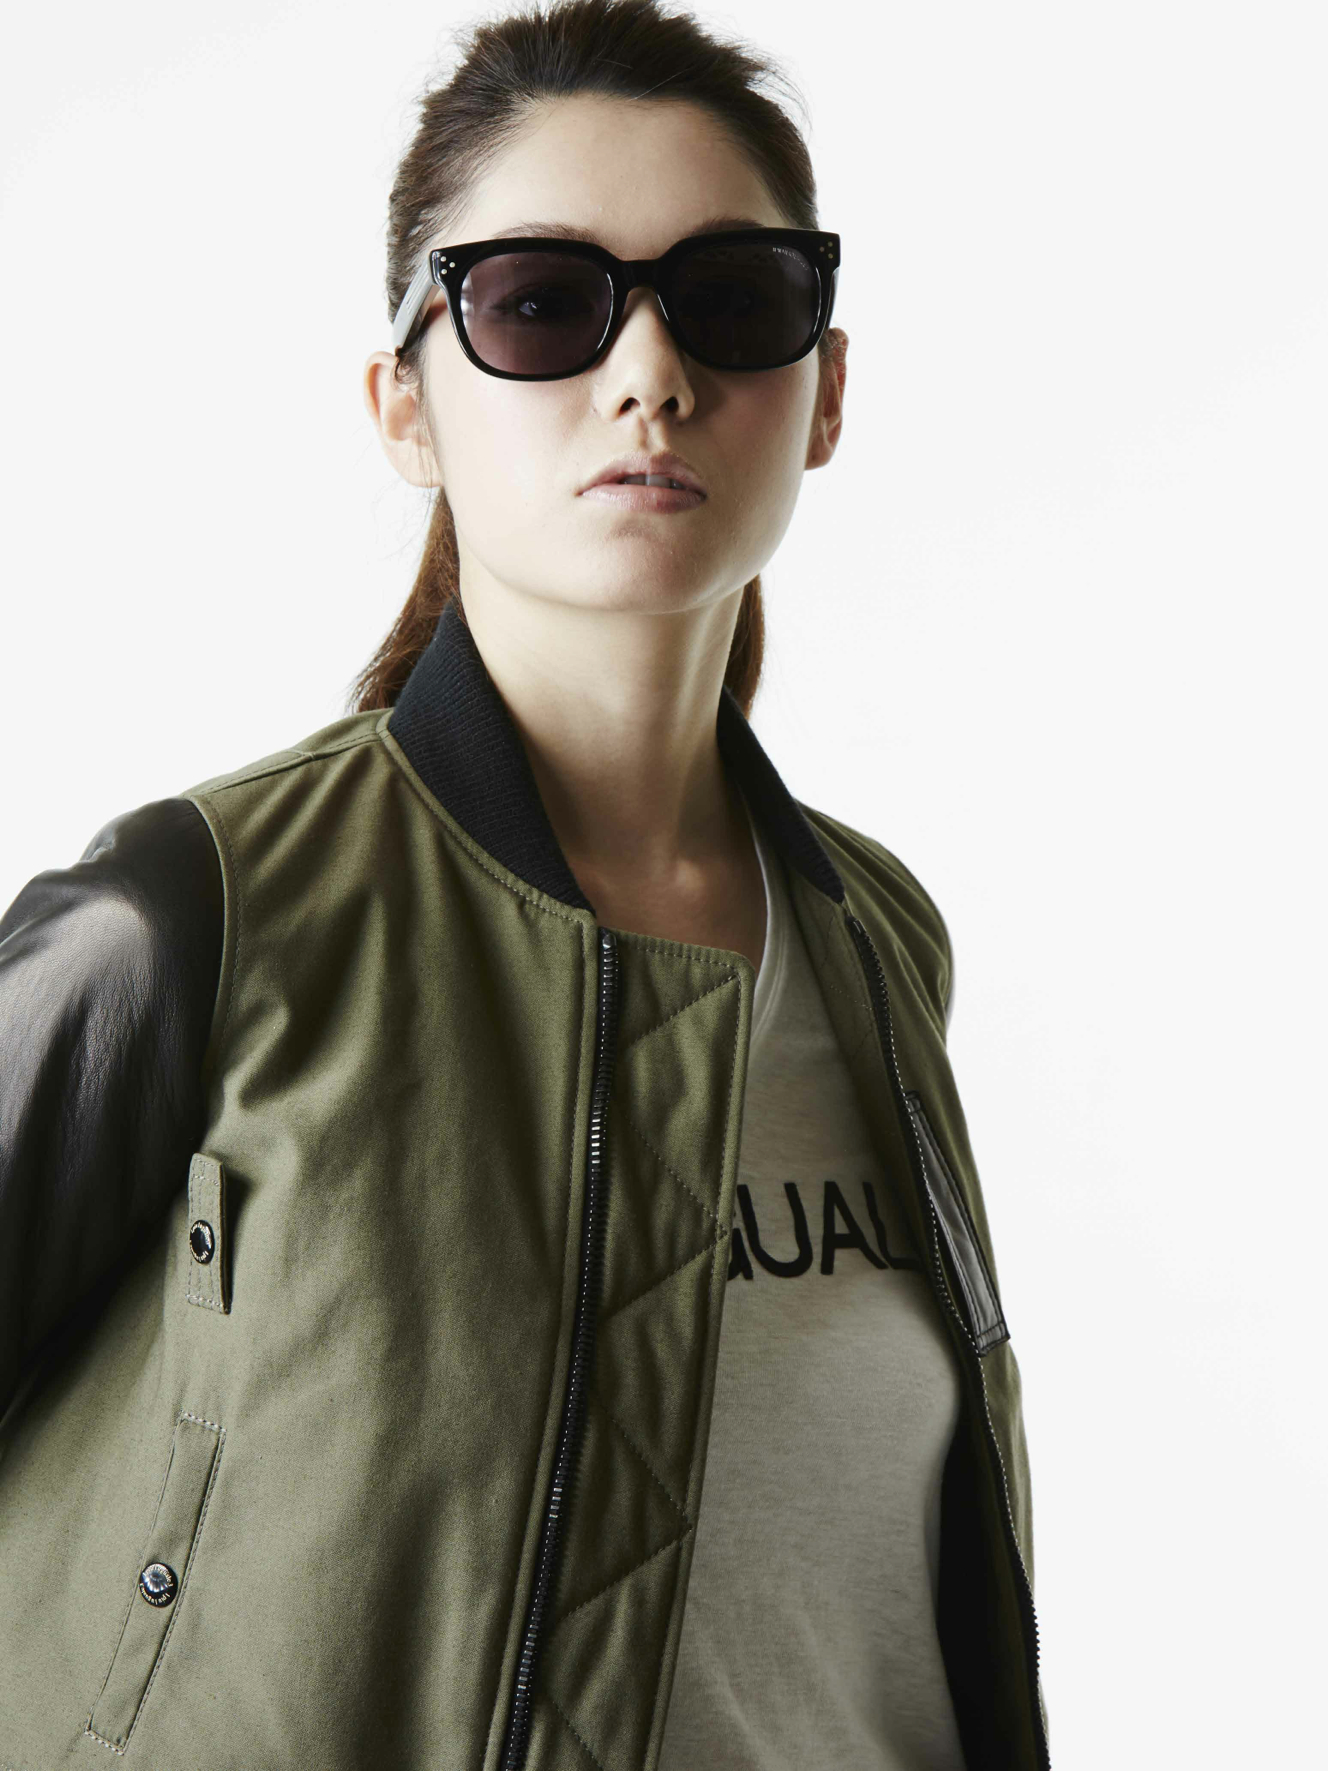 1PIU1UGUALE3 2014-15AW Collection Look.131-2